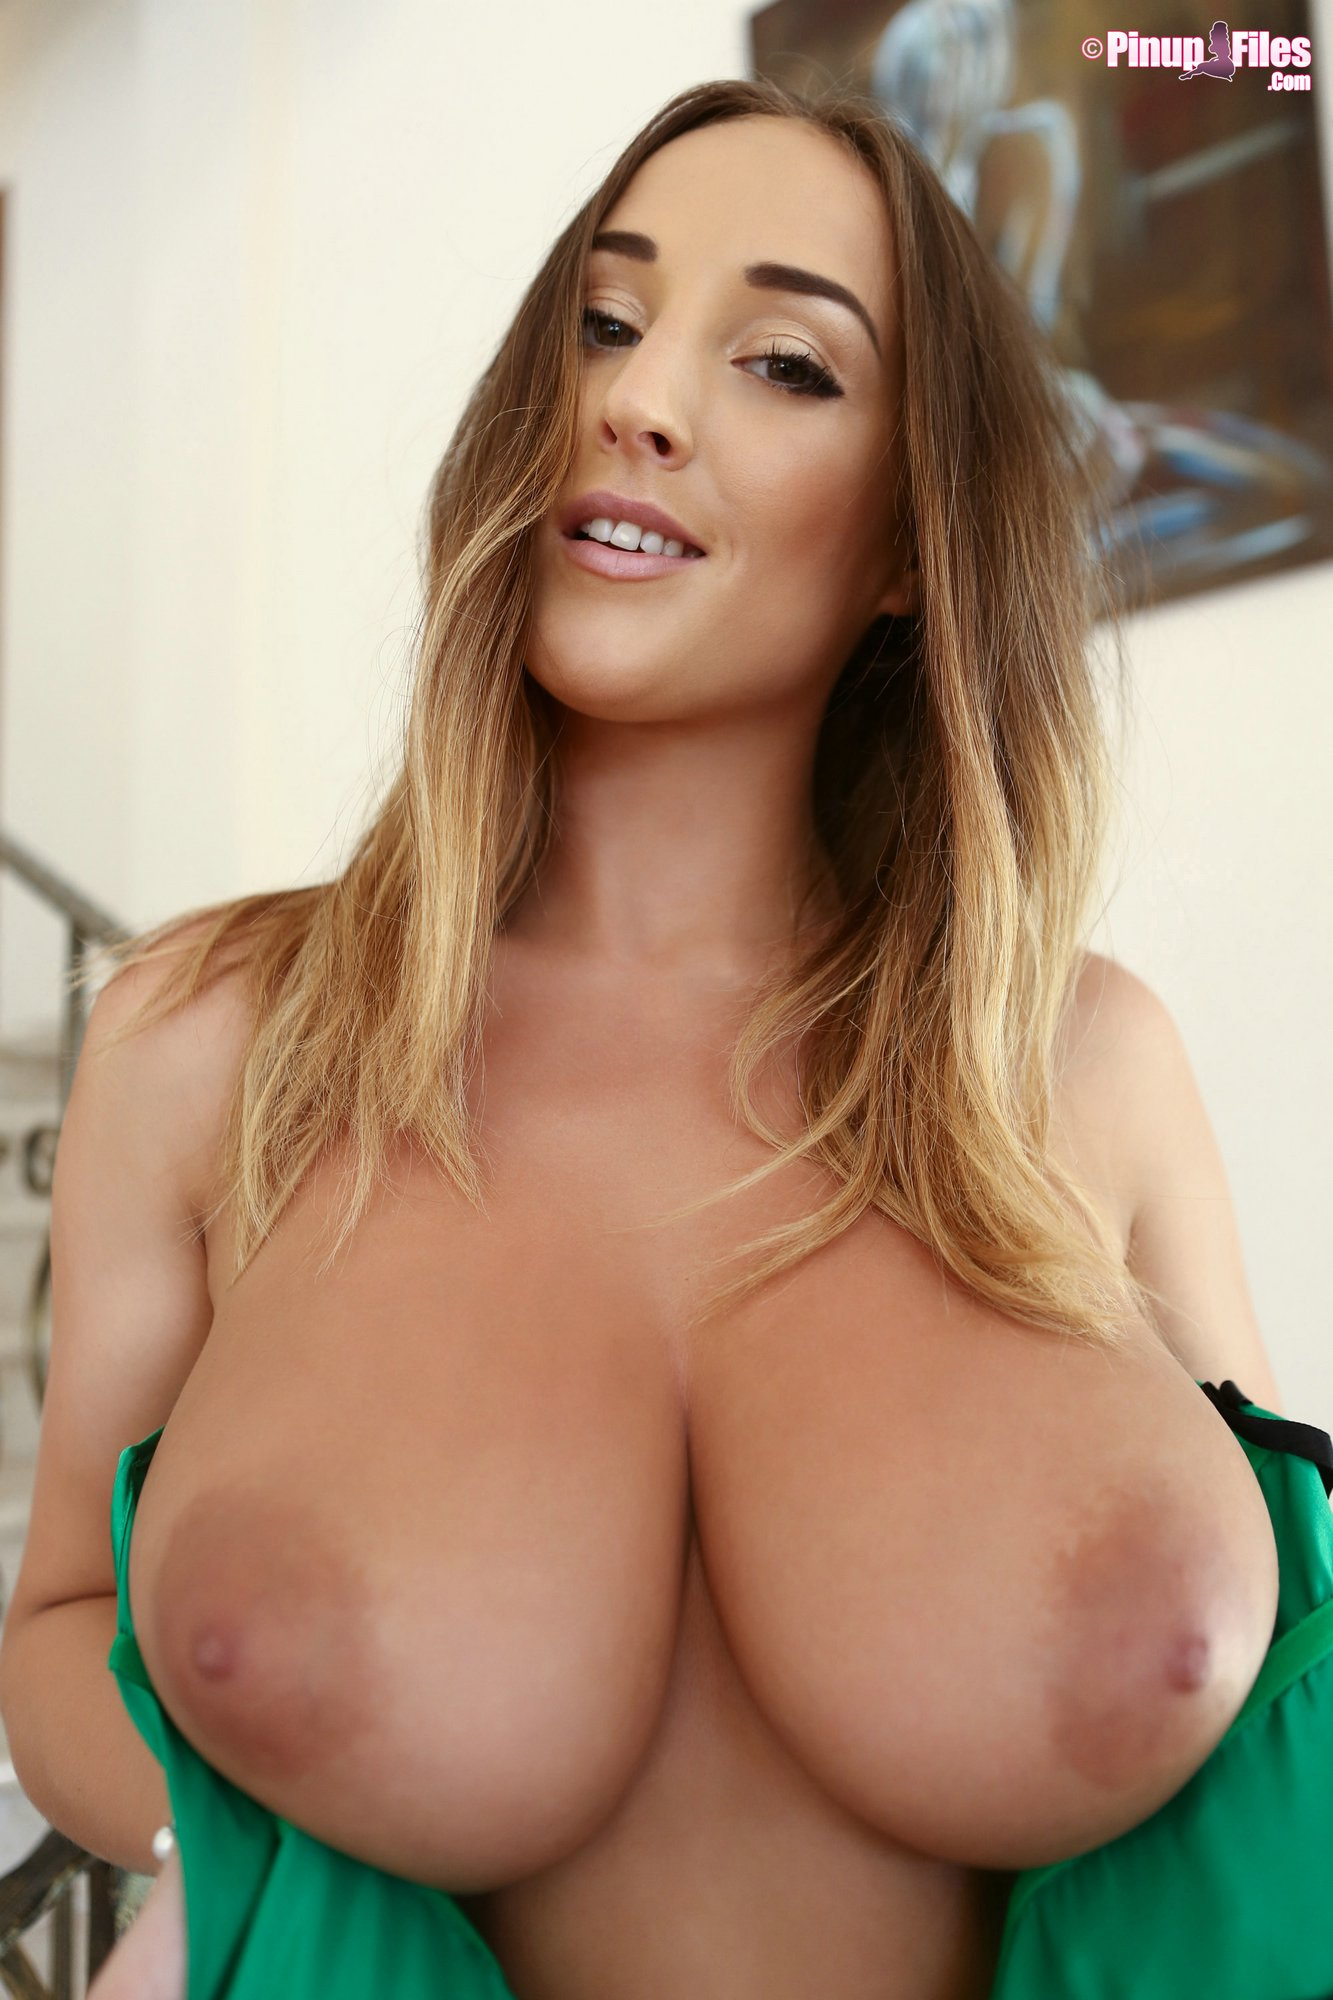 Stacey Poole In Sexy Corset Posing On Stairs - My Pornstar -3730